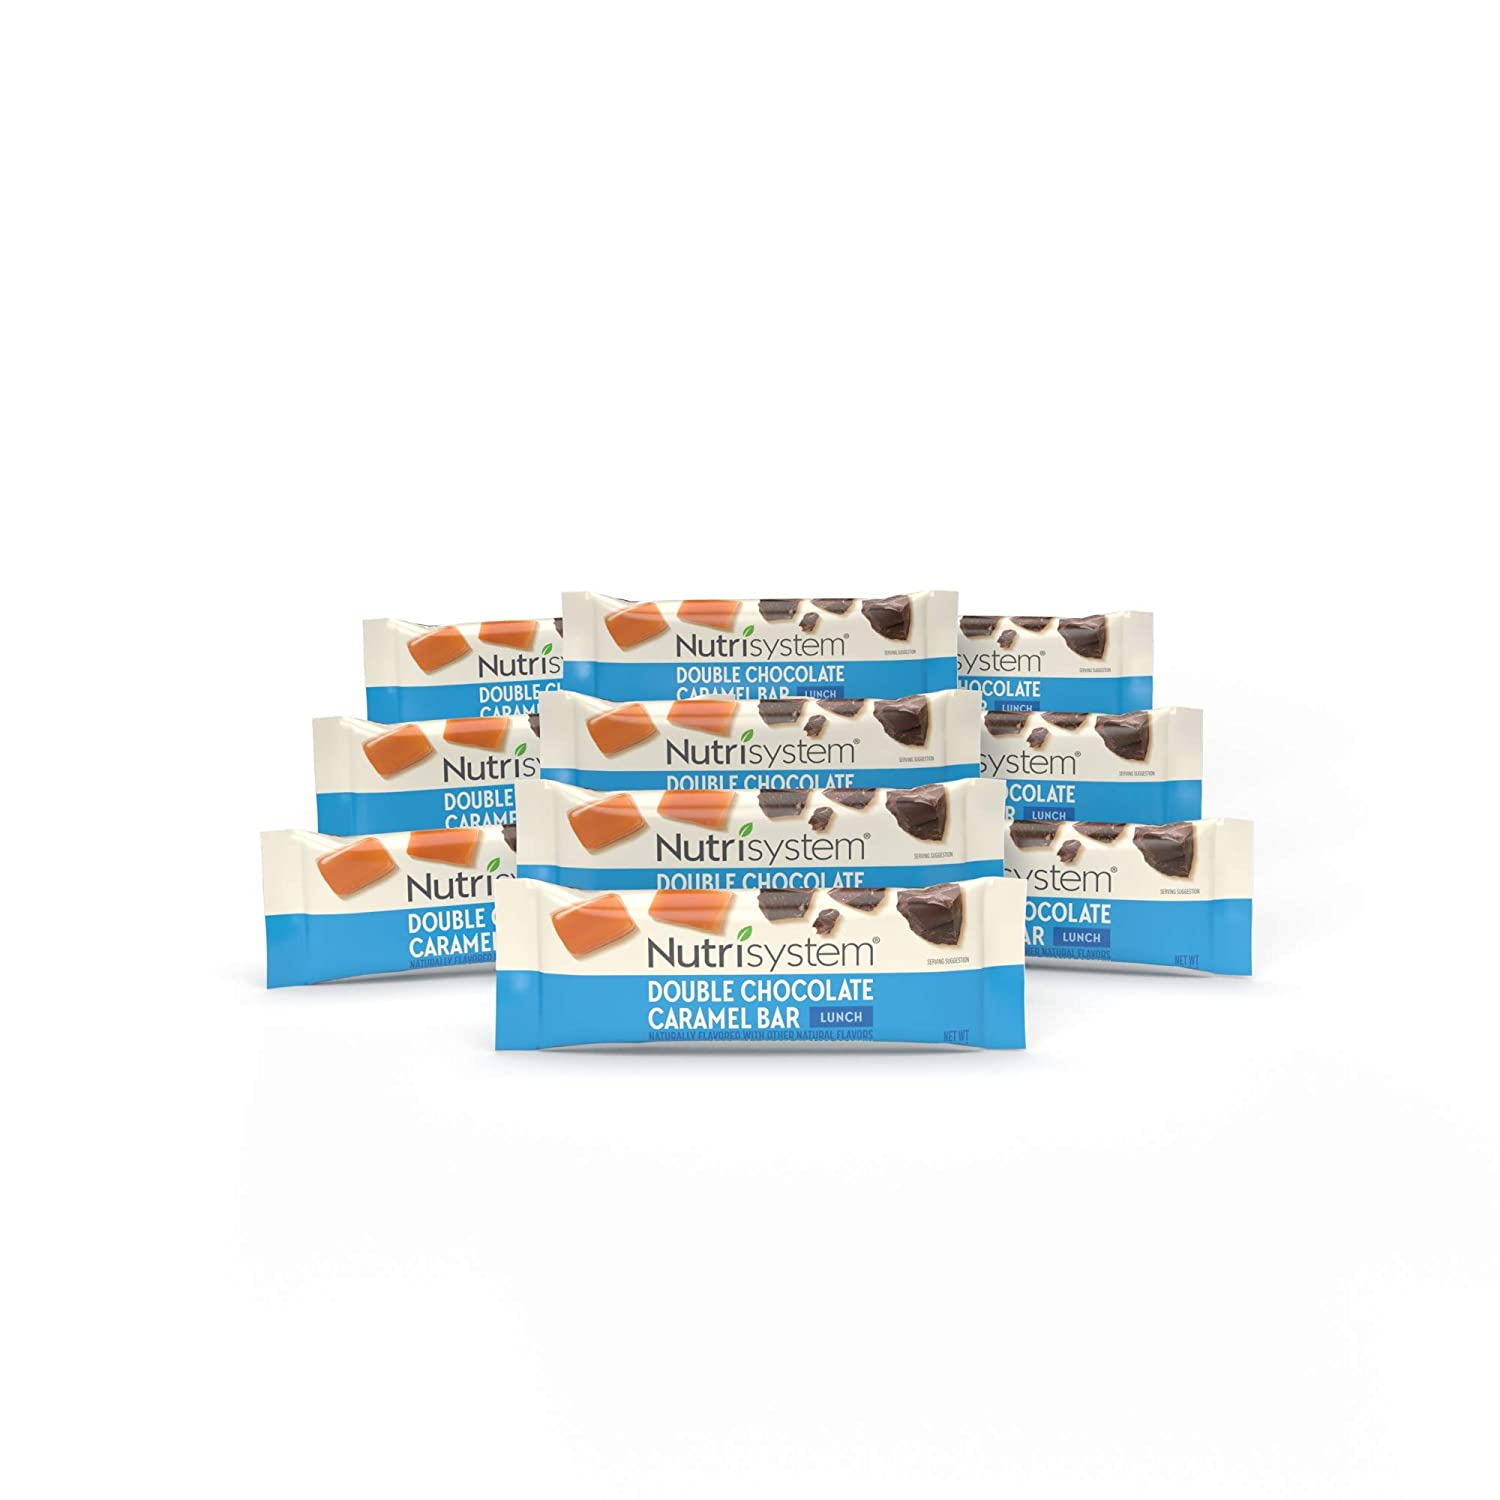 Nutrisystem Double Chocolate Caramel Bars Pack, 10 Count Bars